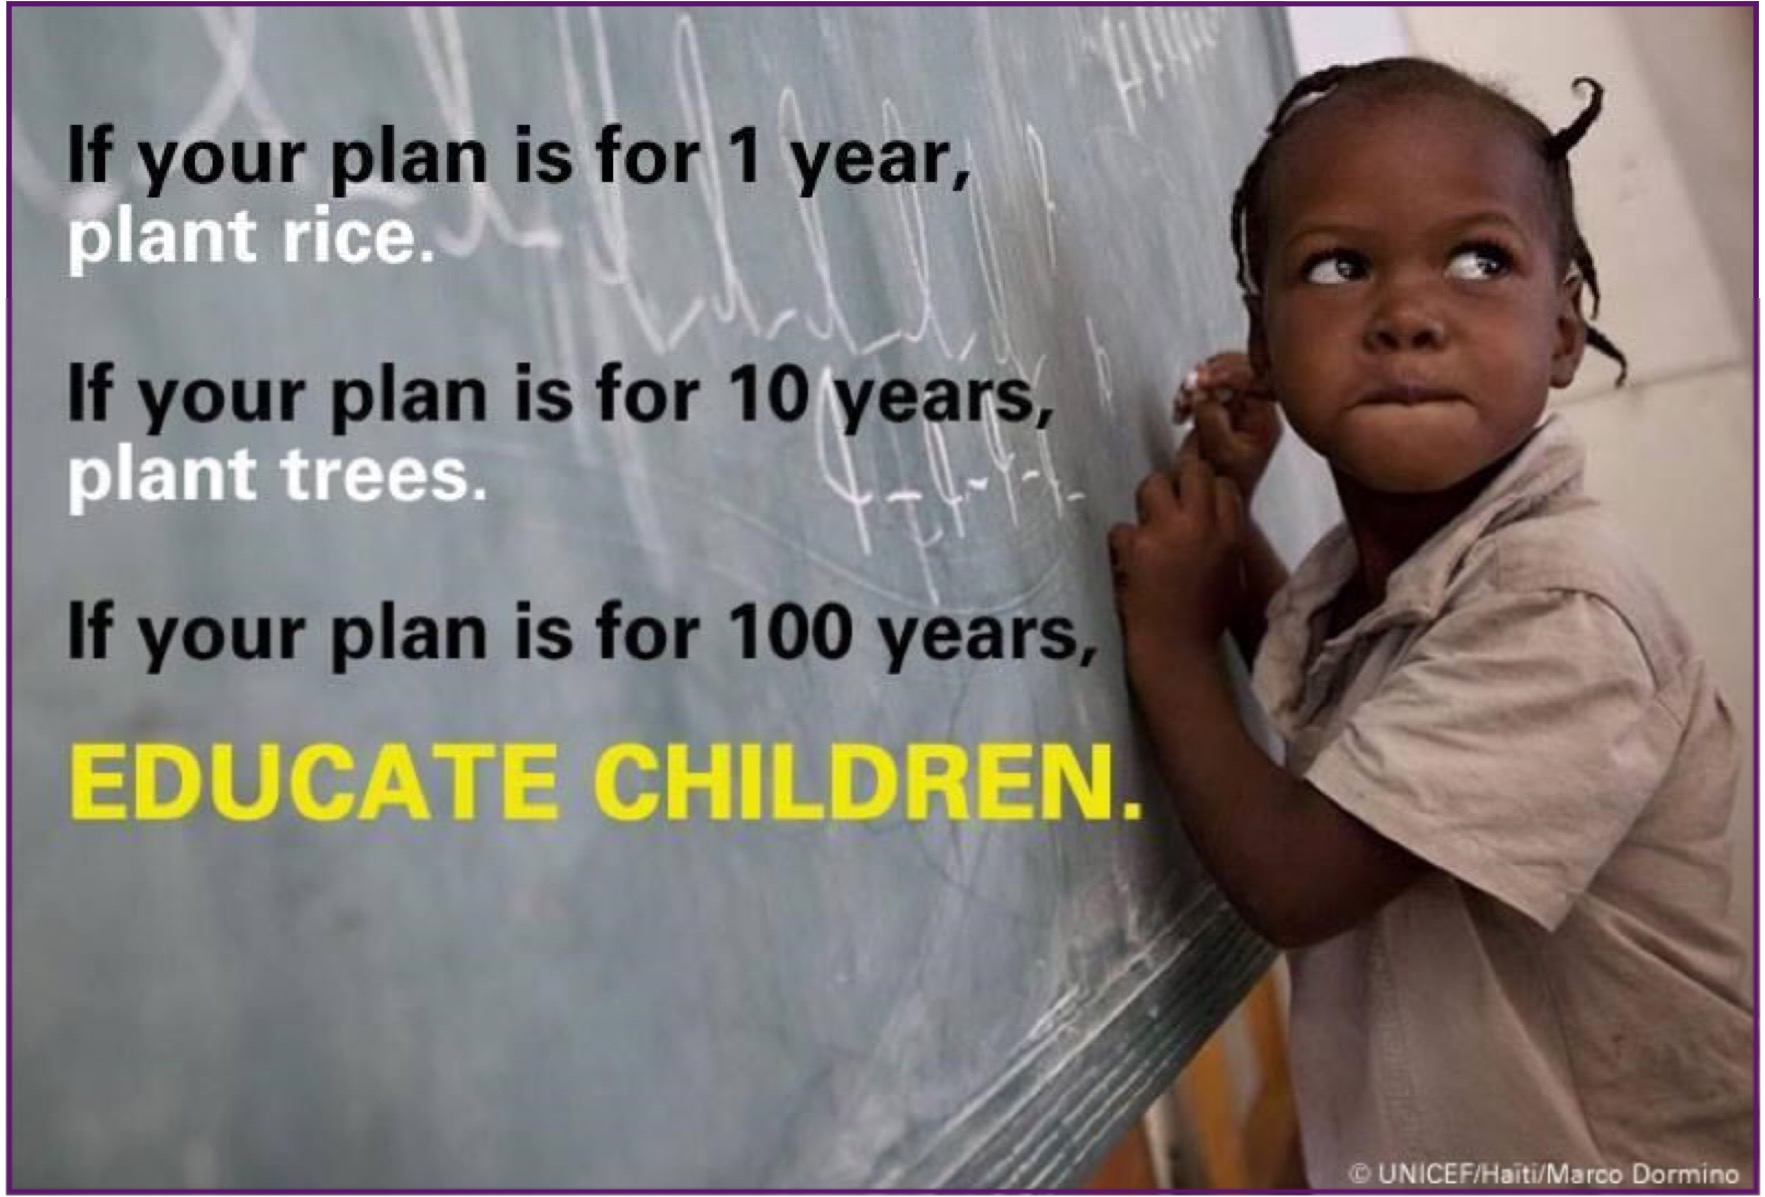 100j educate children